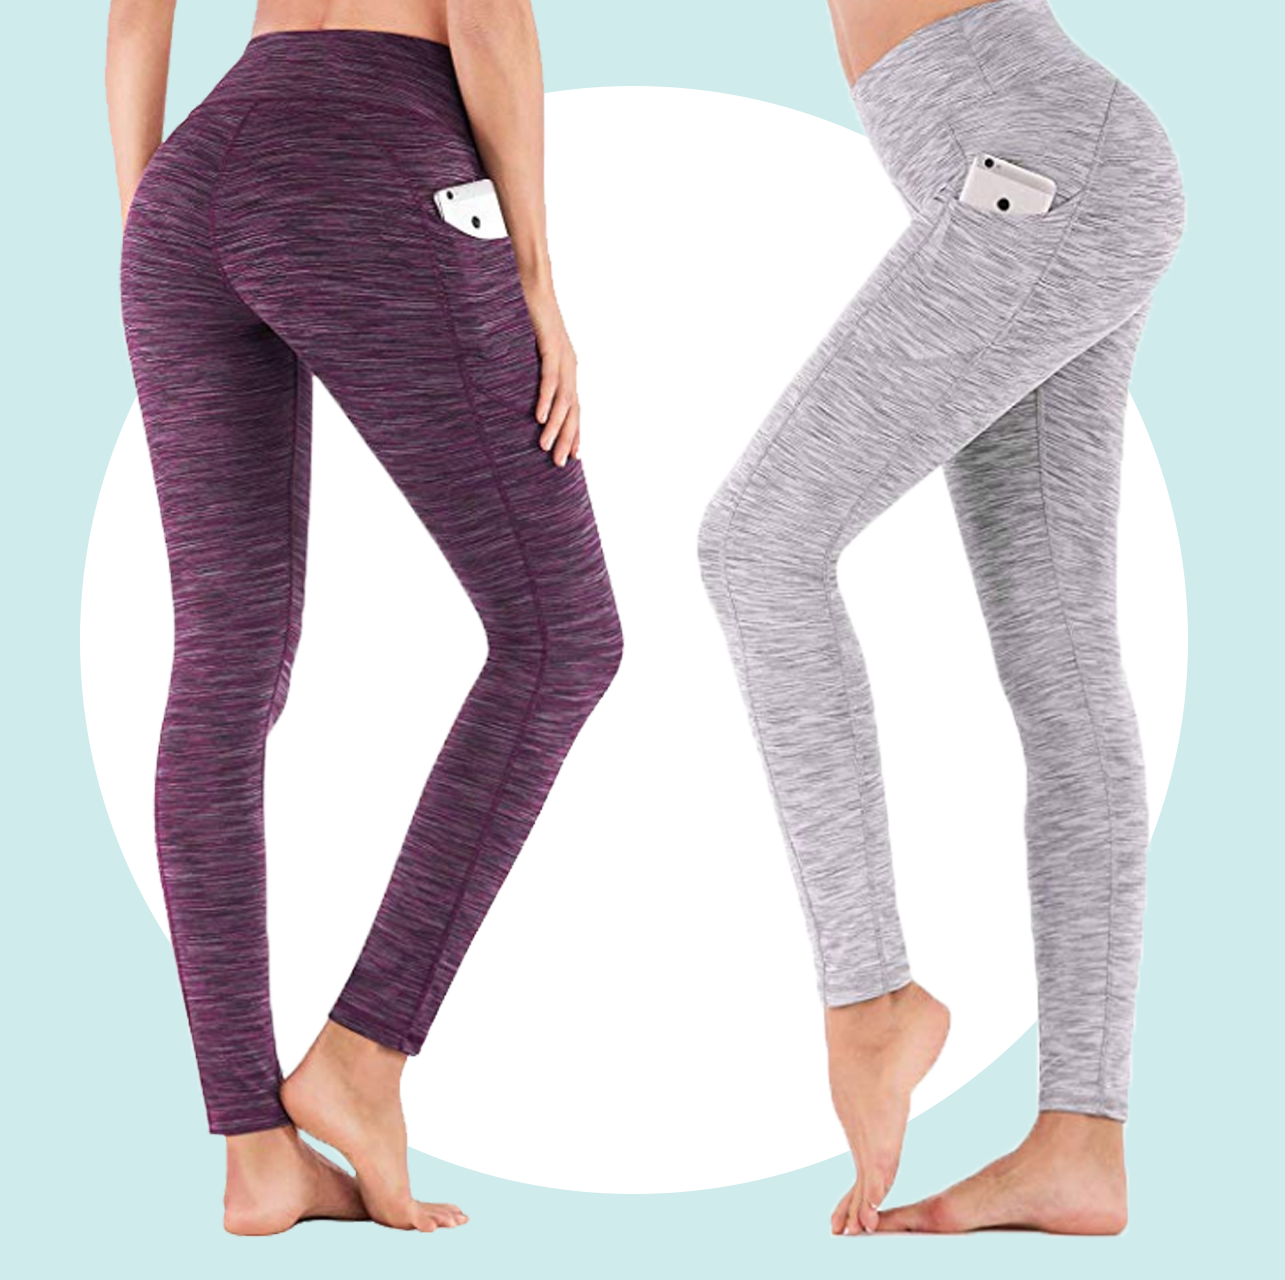 People Are Obsessed With These $15 Yoga Pants From Amazon